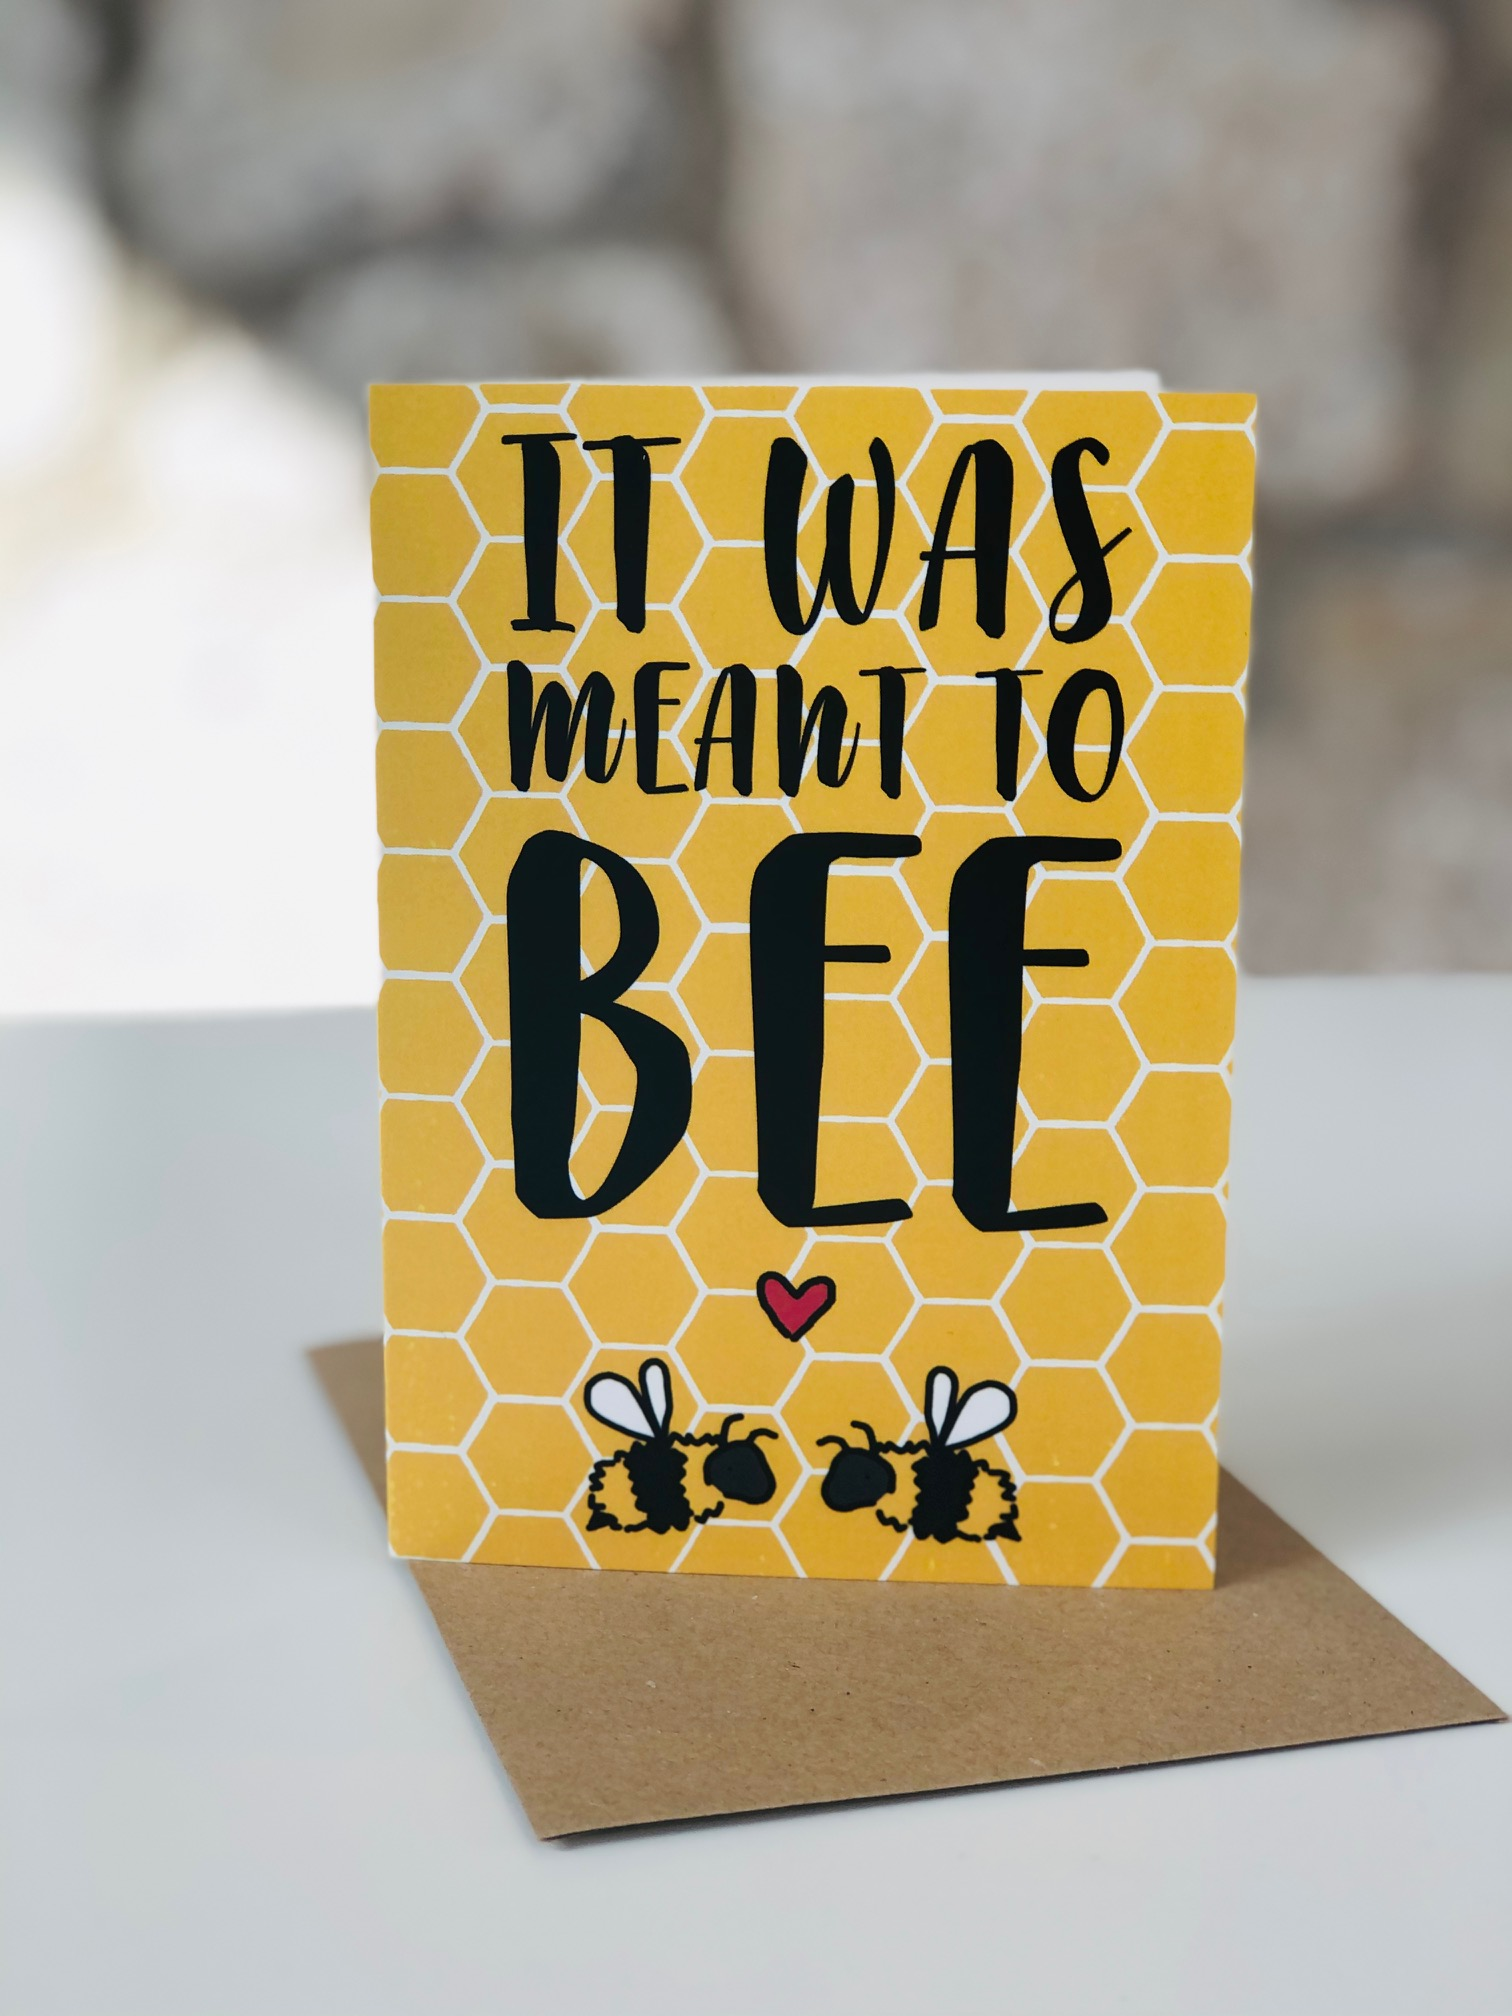 'Meant to Bee' Greetings Card by Emma